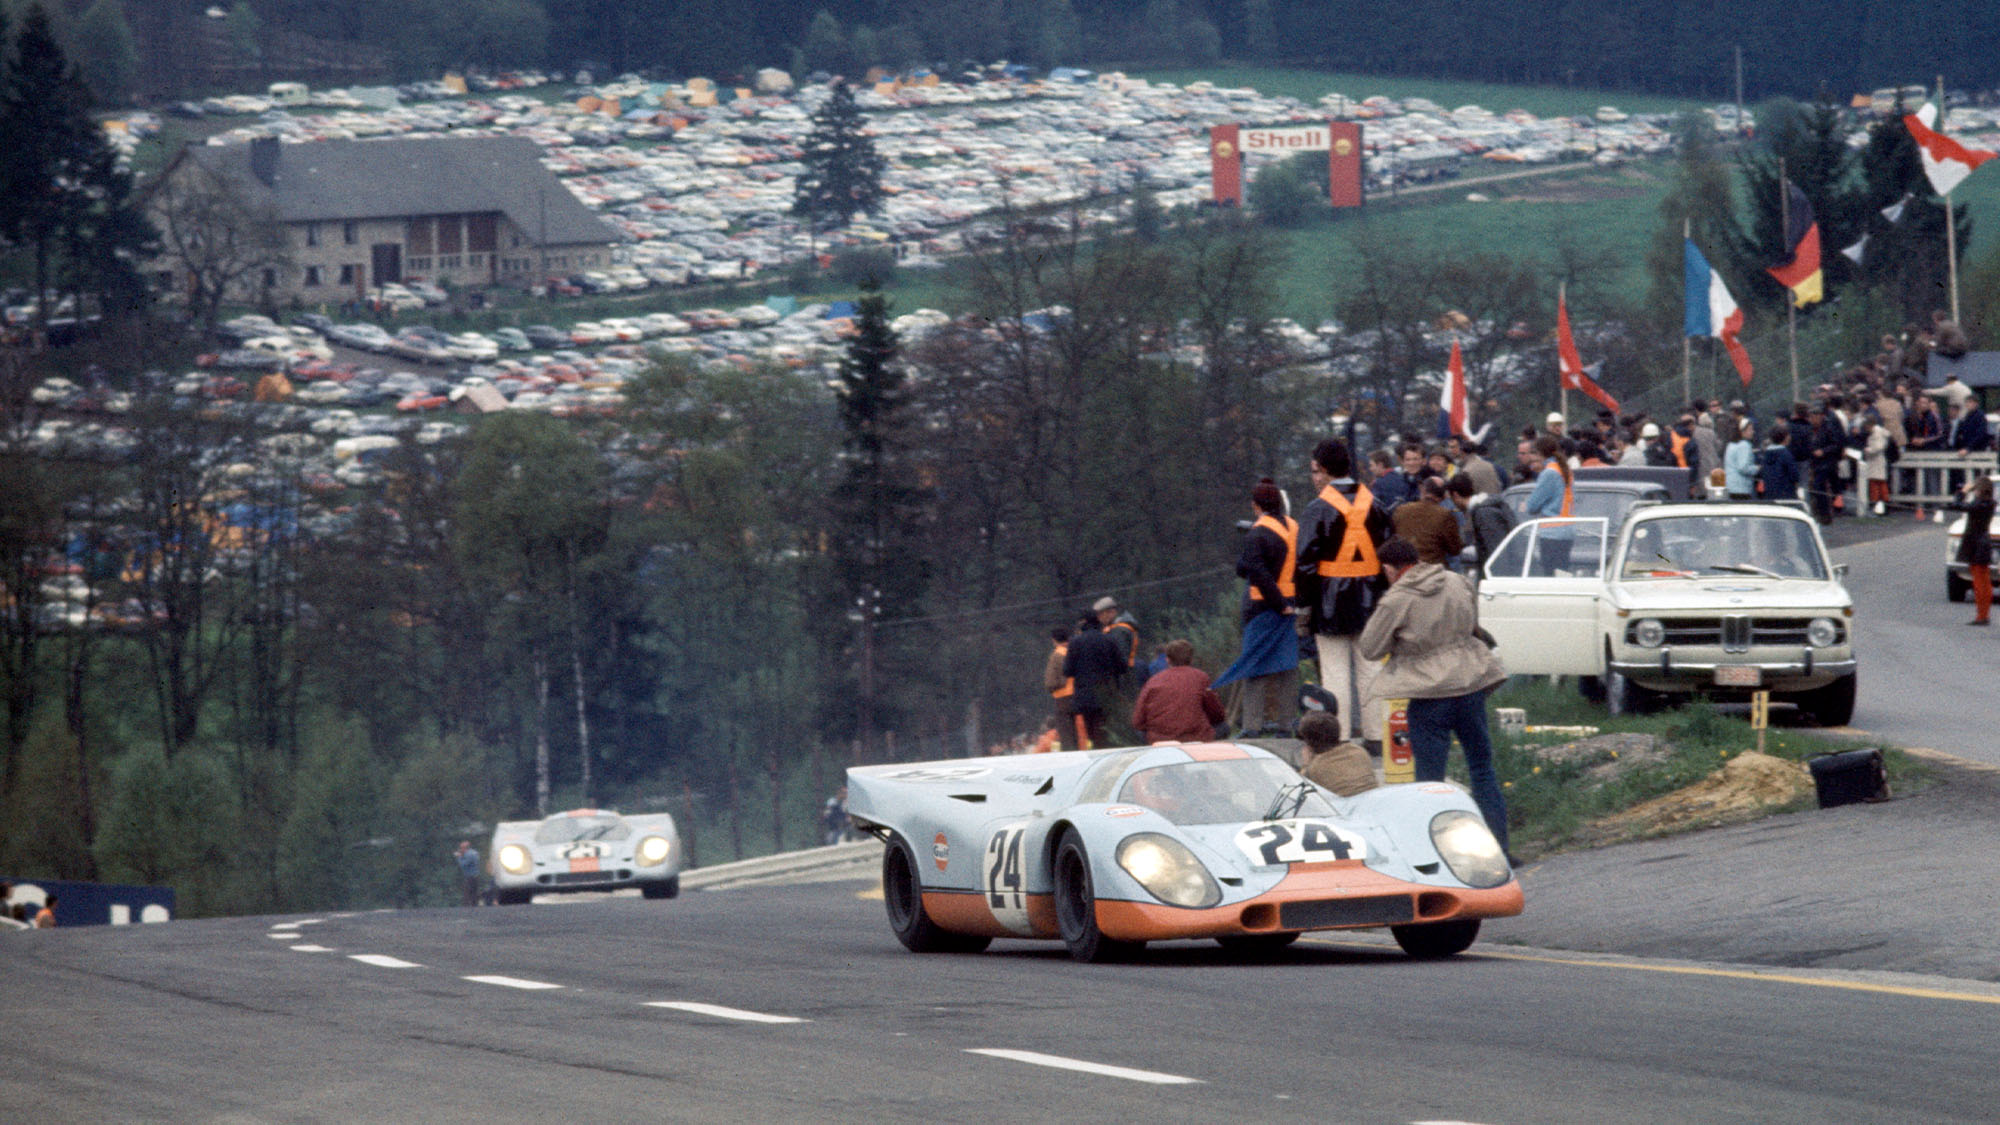 The Porsche 917K driven by Jo Siffert and Brian Redman at the Raidillon corner, followed by the sster car of Pedro Rodriguez and Leo Kinnunen, The Siffert/Redman car will win, Spa-Francochamps 1000Km. (Photo by Nigel Snowdon/Klemantaski Collection/Getty Images)